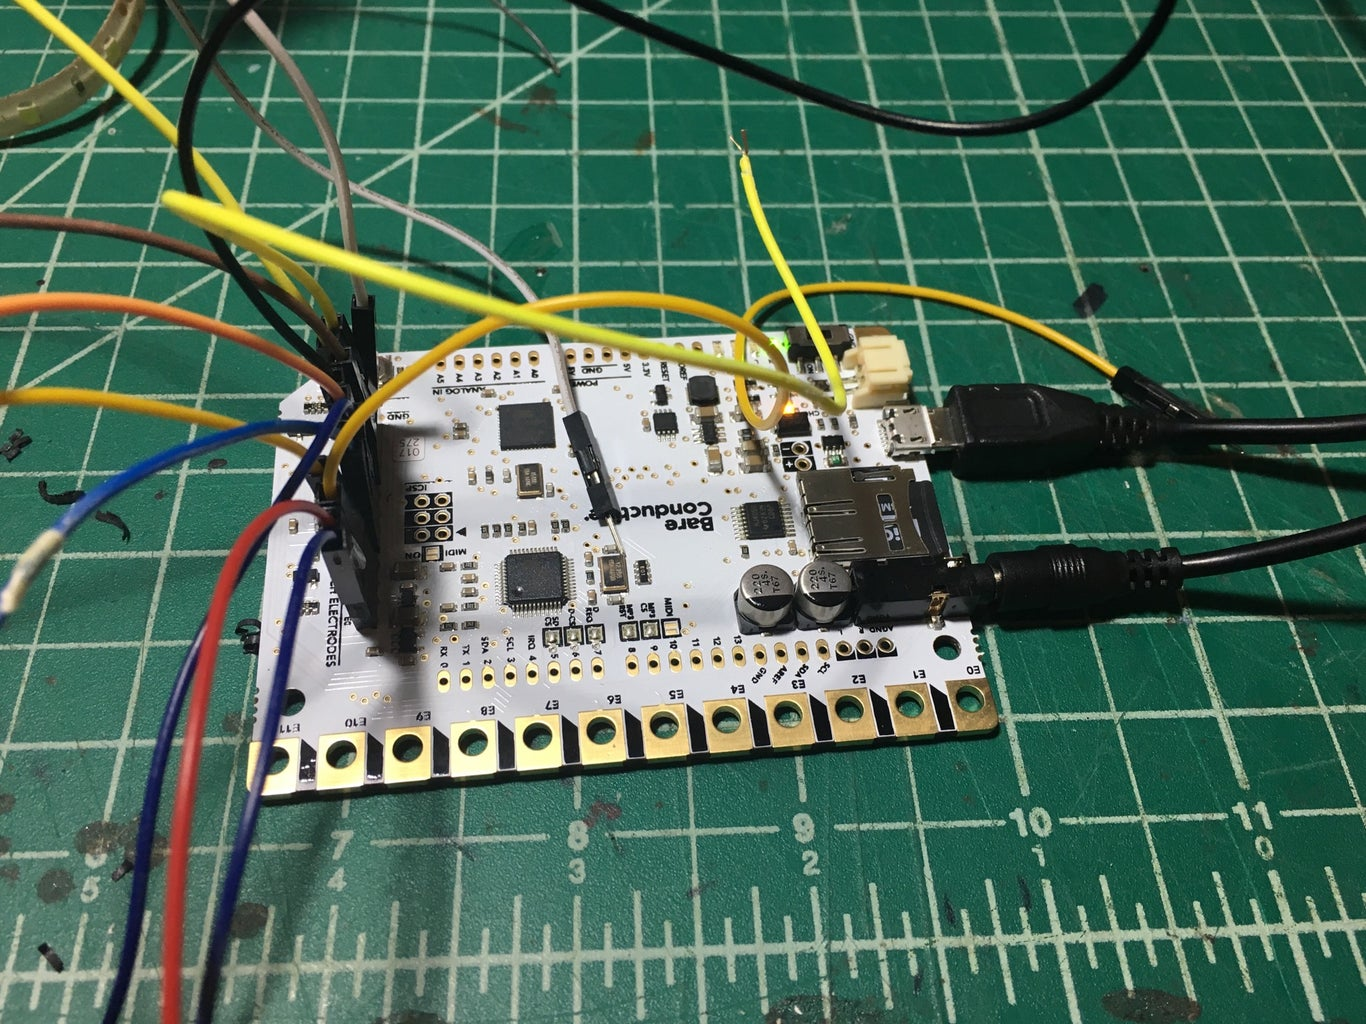 Now Test With Wires